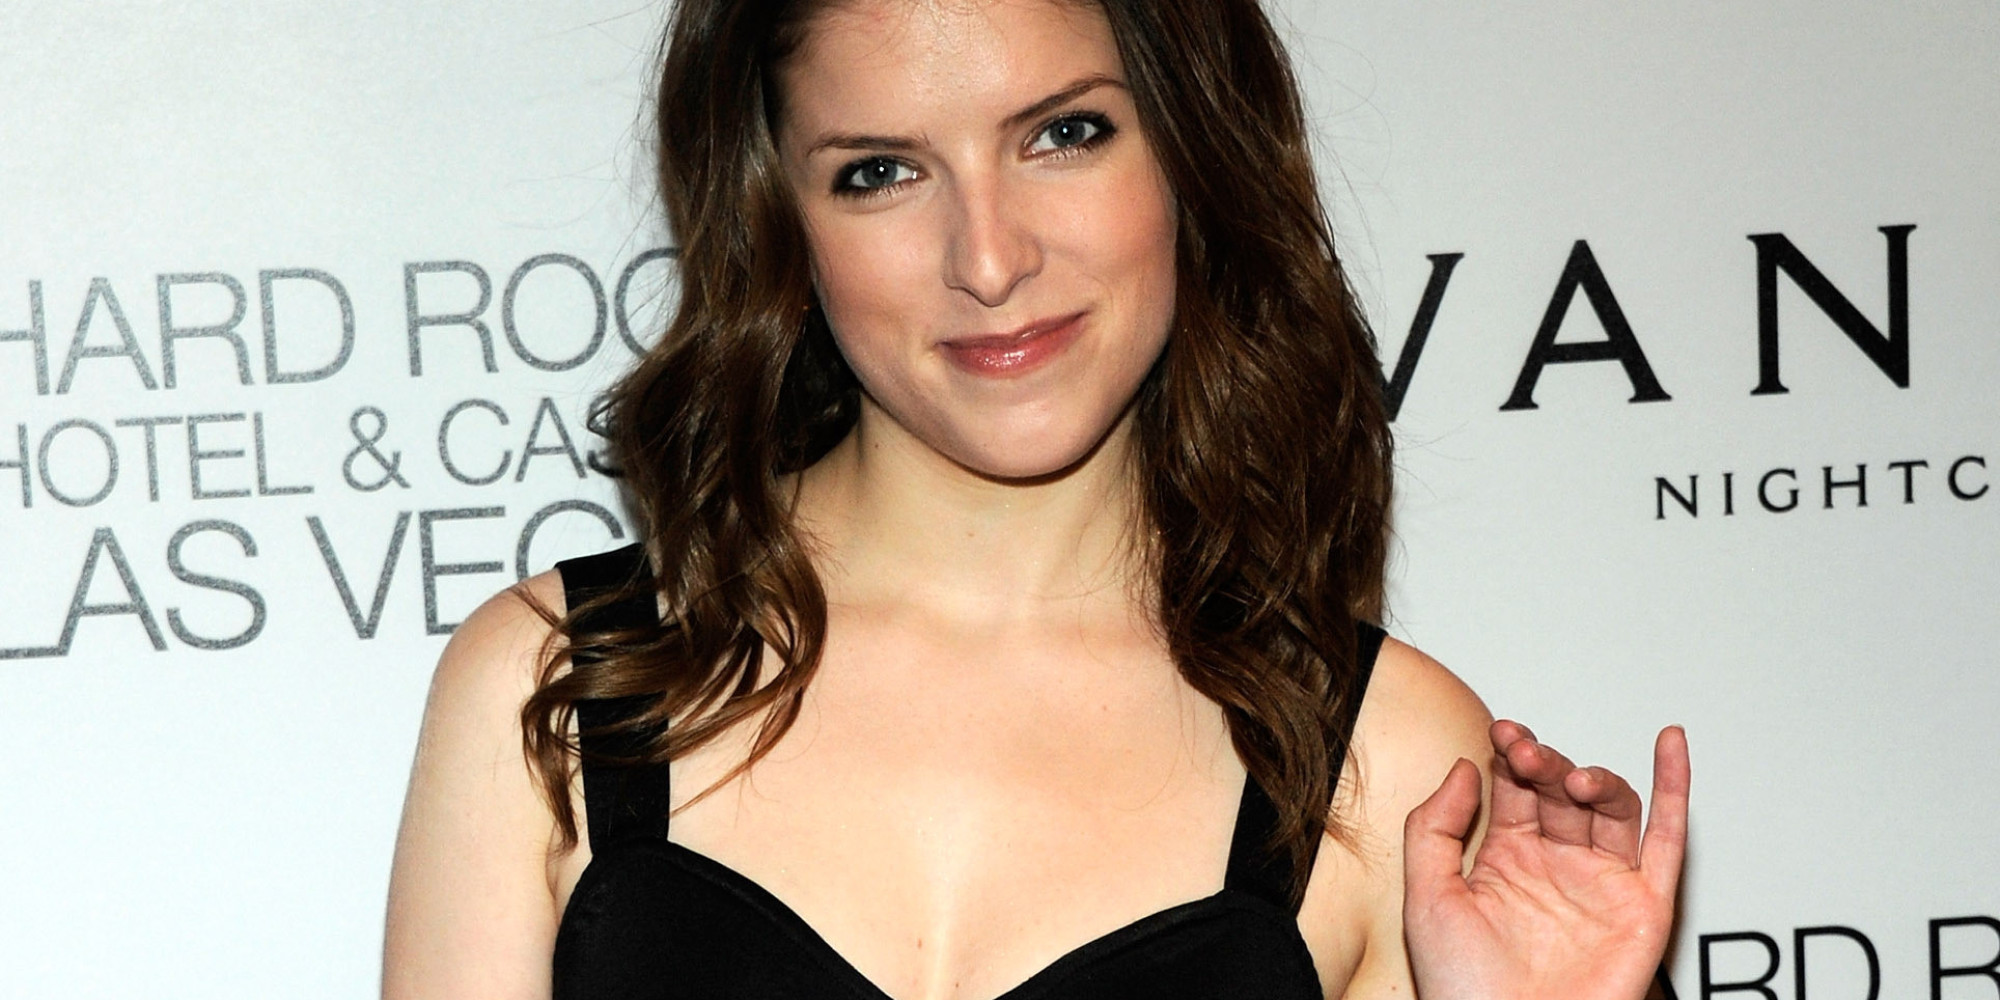 kendrick gay singles Anna kendrick age, height, boyfriend, married, how tall is, feet, husband, wiki, is married, phone number, wedding, brother, date of birth, house, birthday, house.